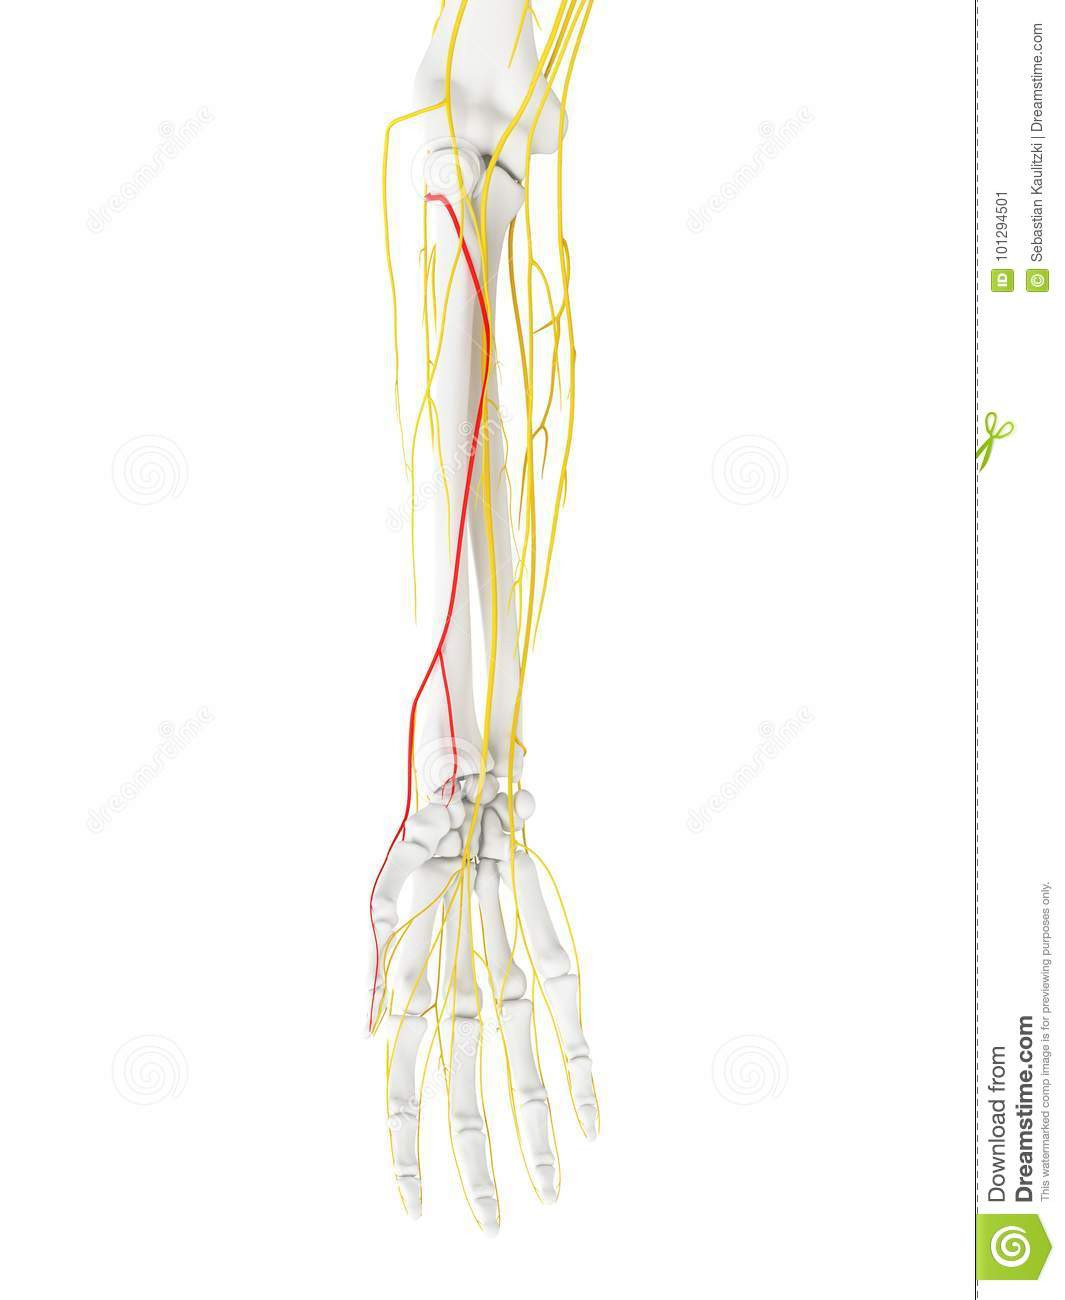 The Superficial Branch Radial Nerve Stock Illustration ...